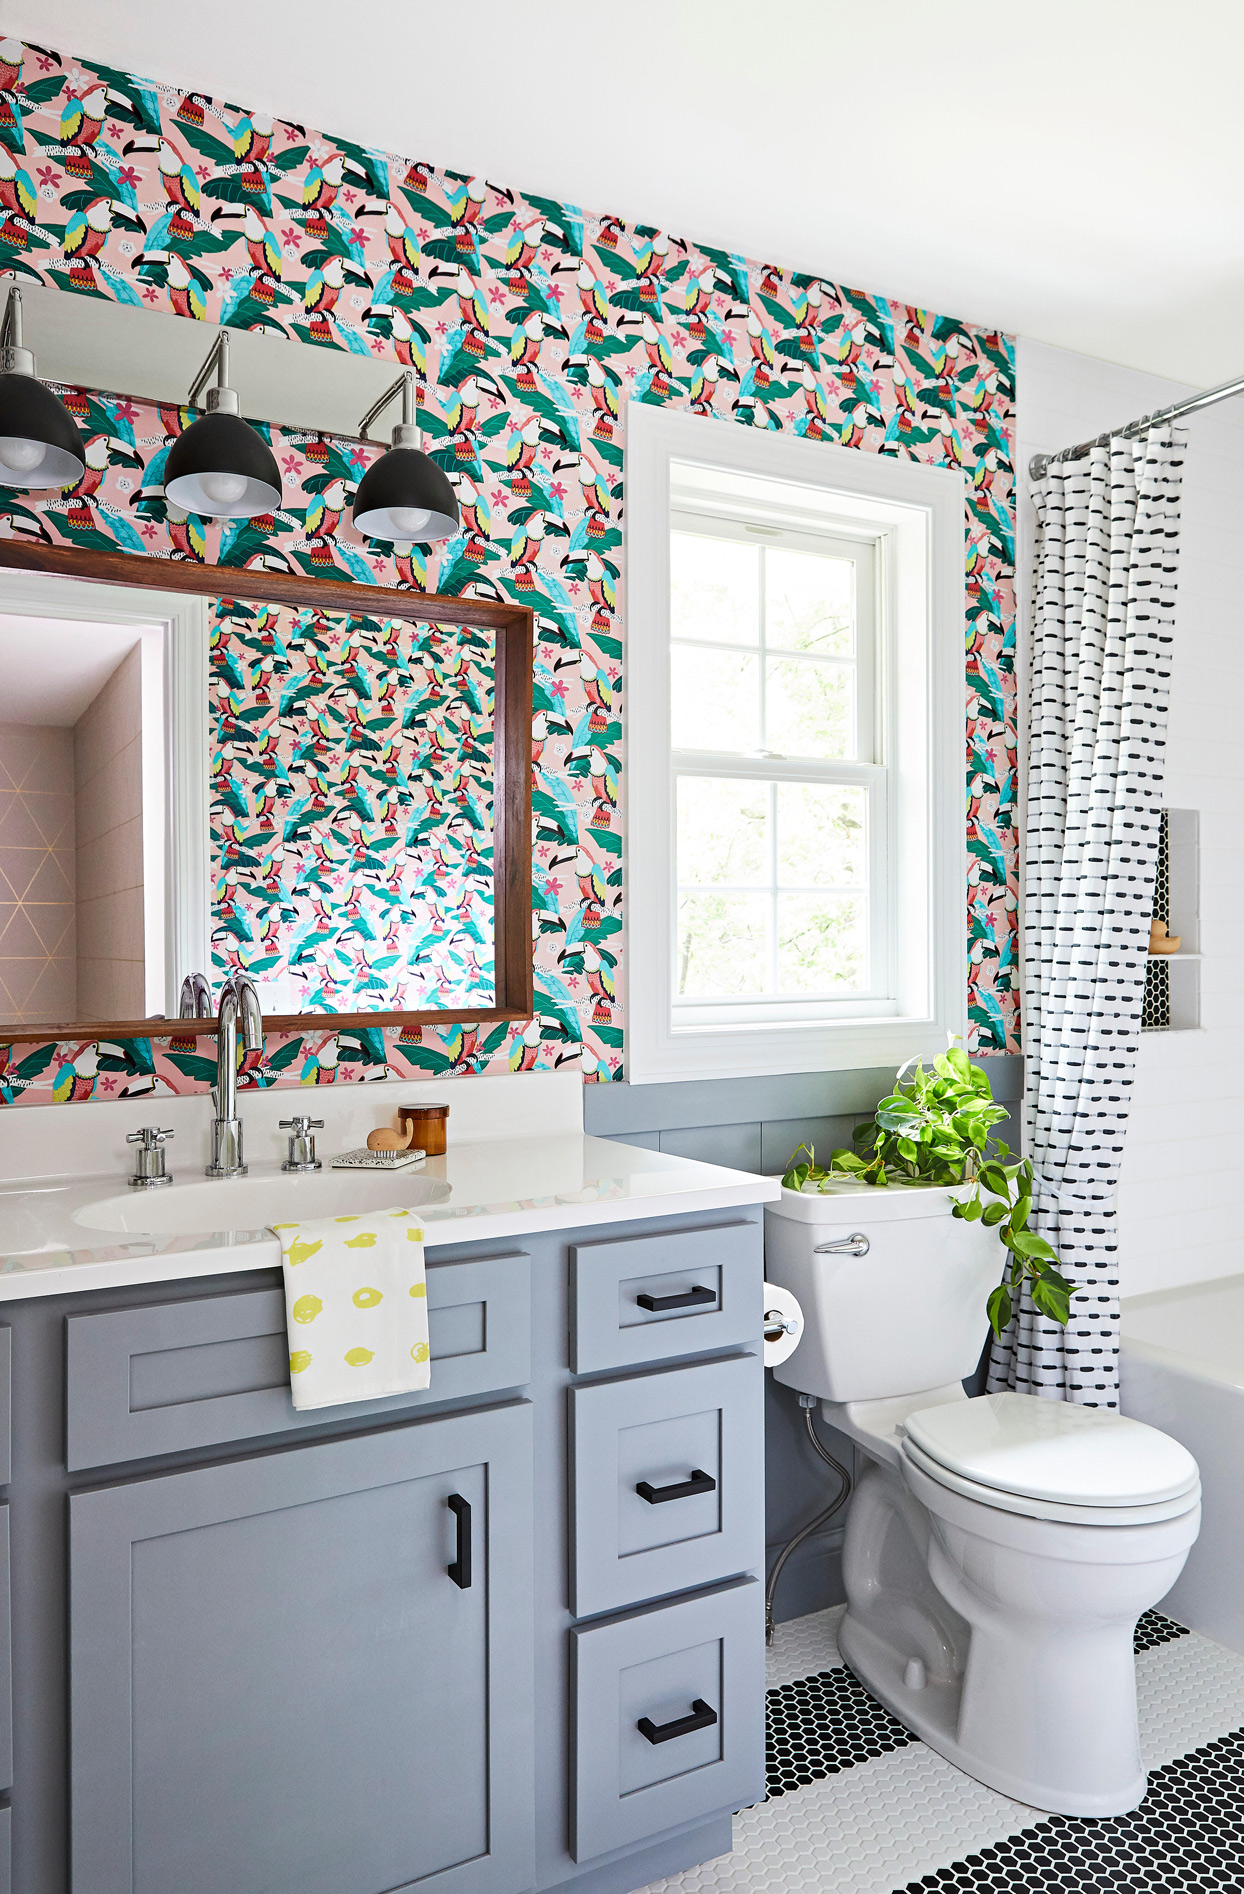 bathroom with toucan pattern wallpaper